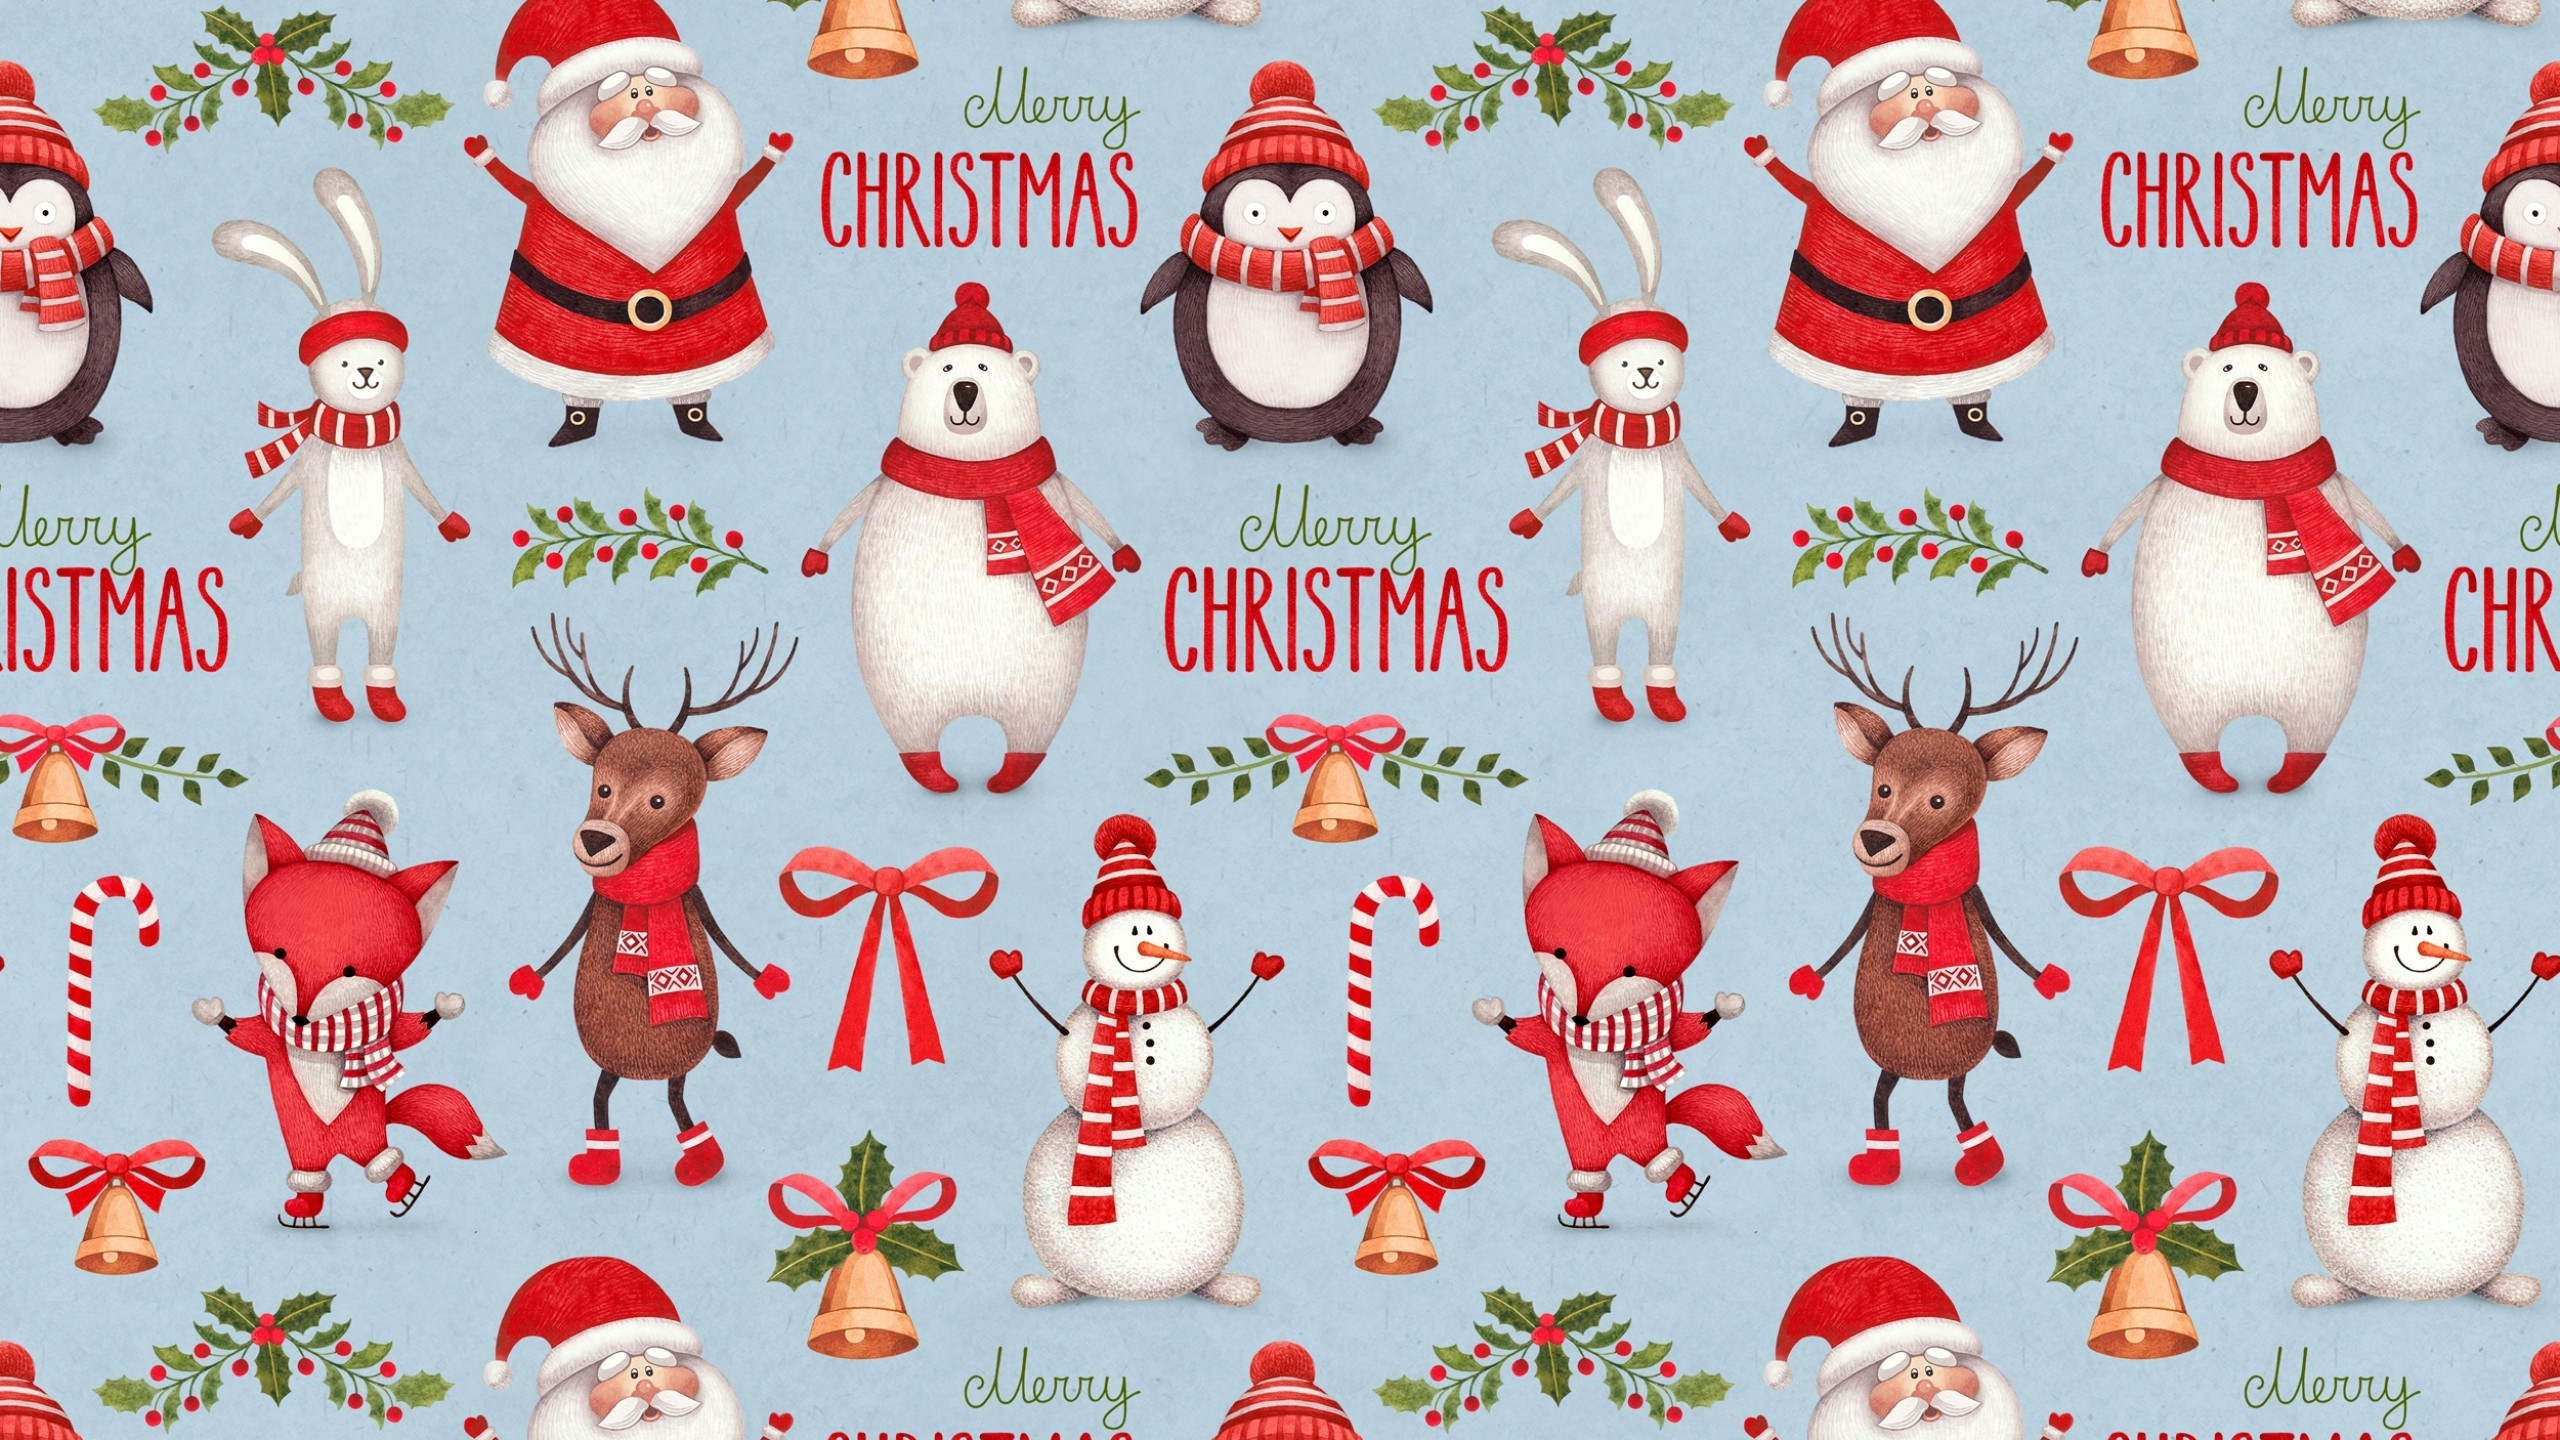 Christmas Santa Claus Wallpaper High Quality